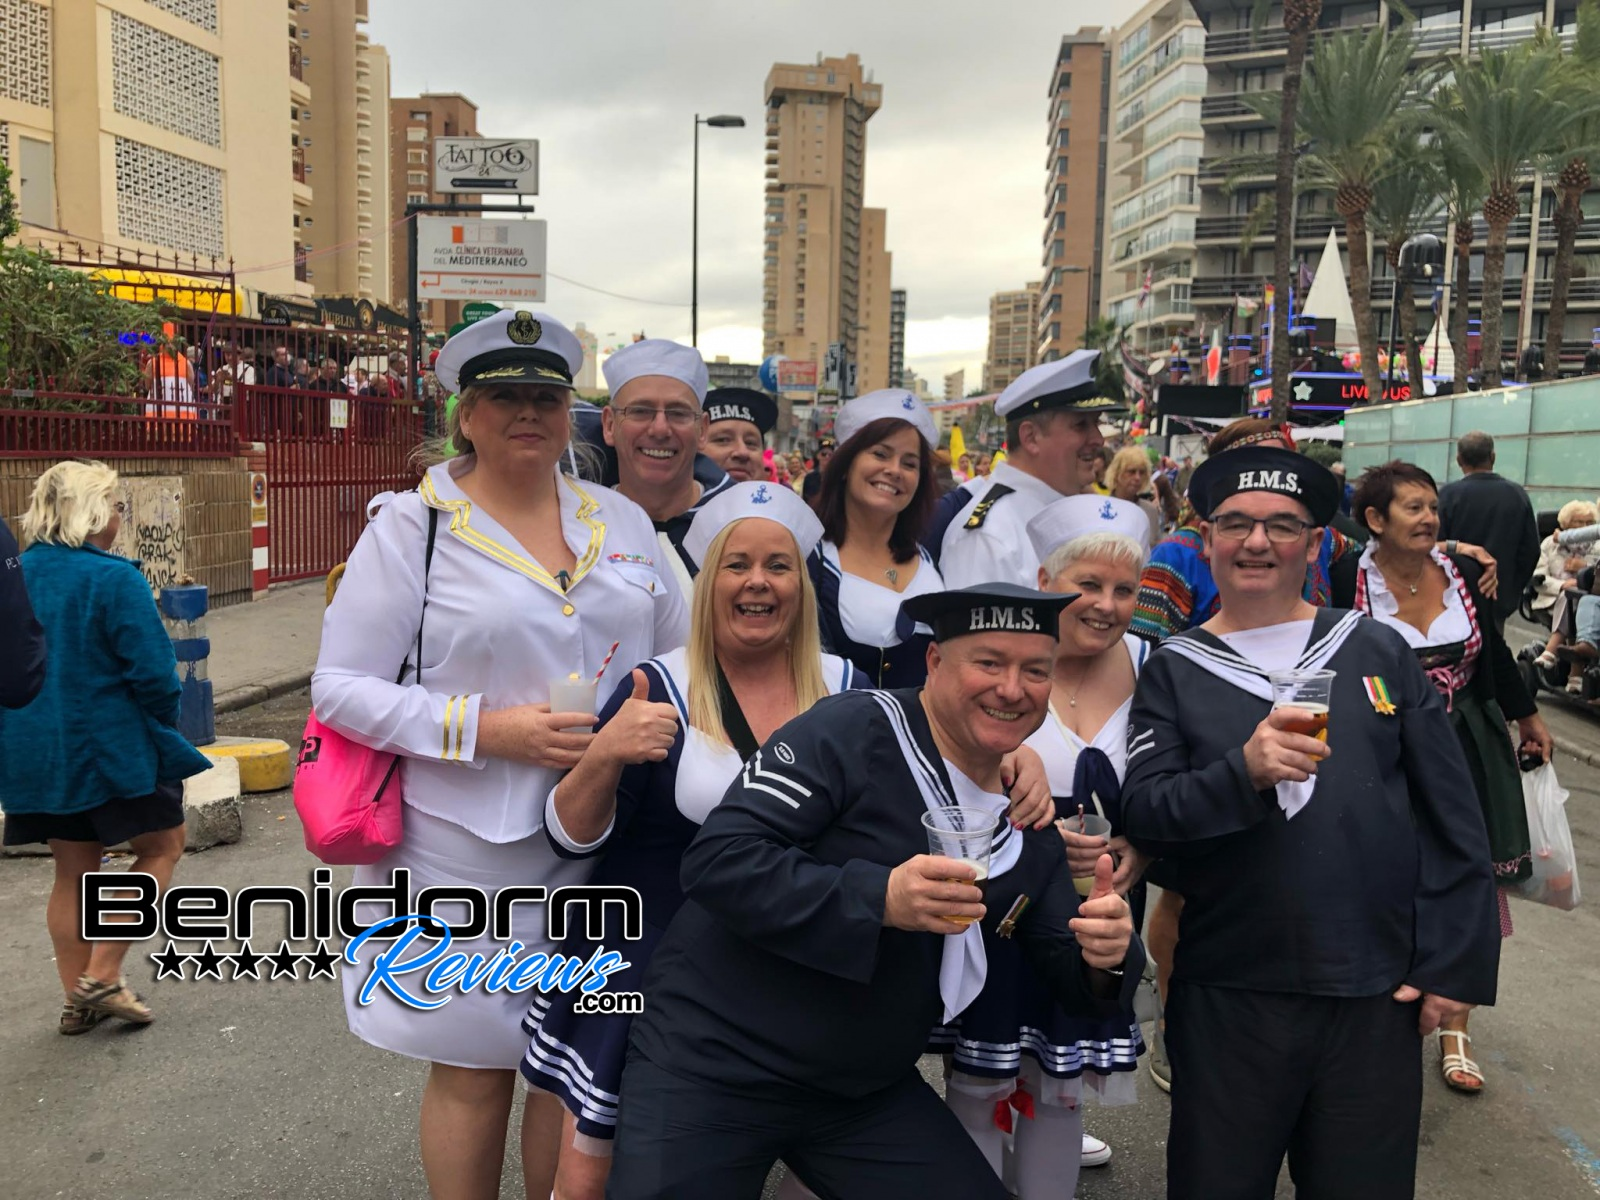 Benidorm-Fiestas-2019-Fancy-Dress-235